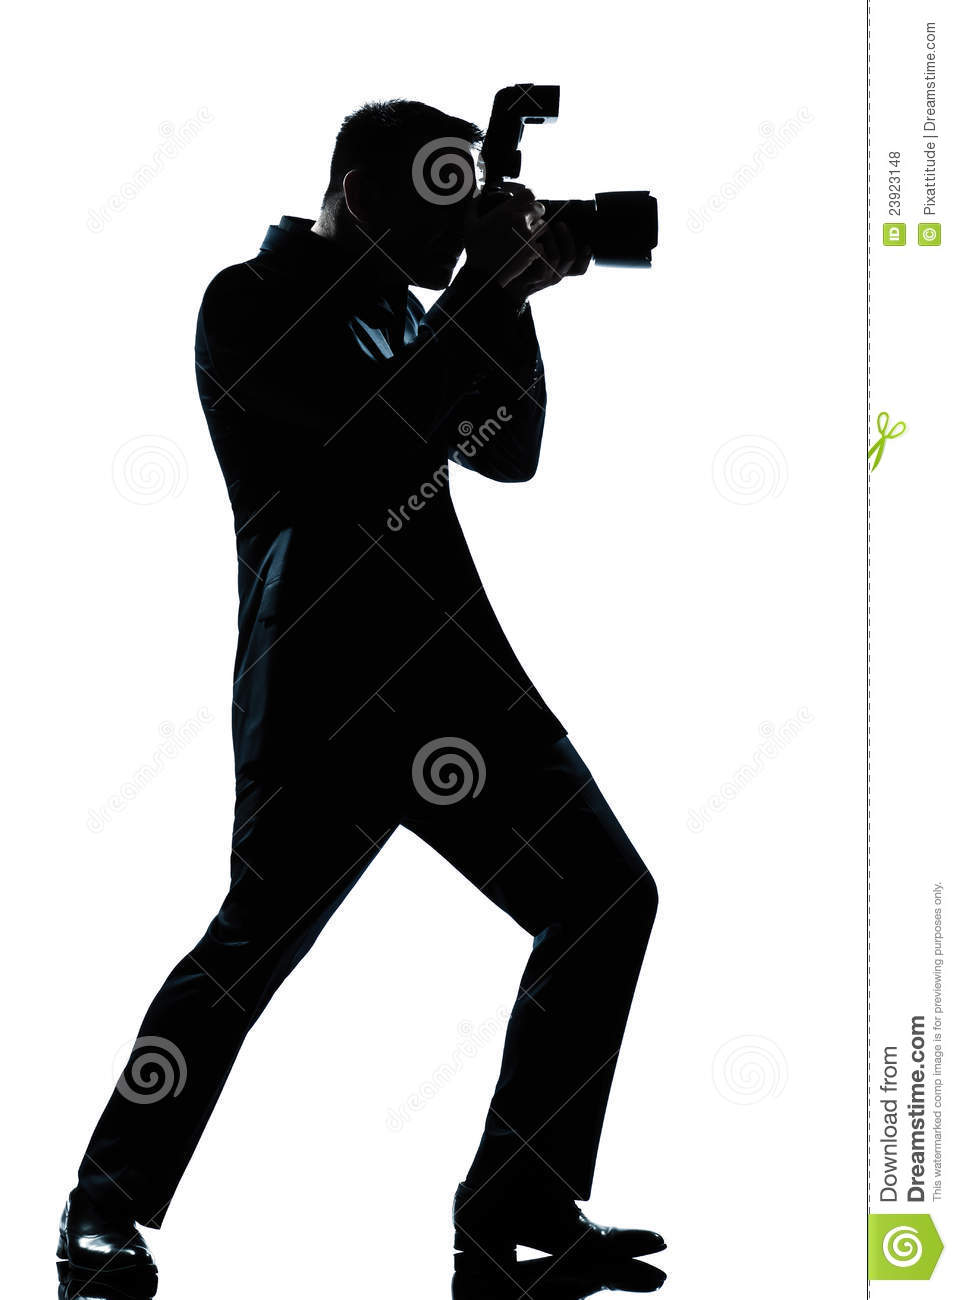 Silhouette Man Full Length Photographer Royalty Free Stock ...